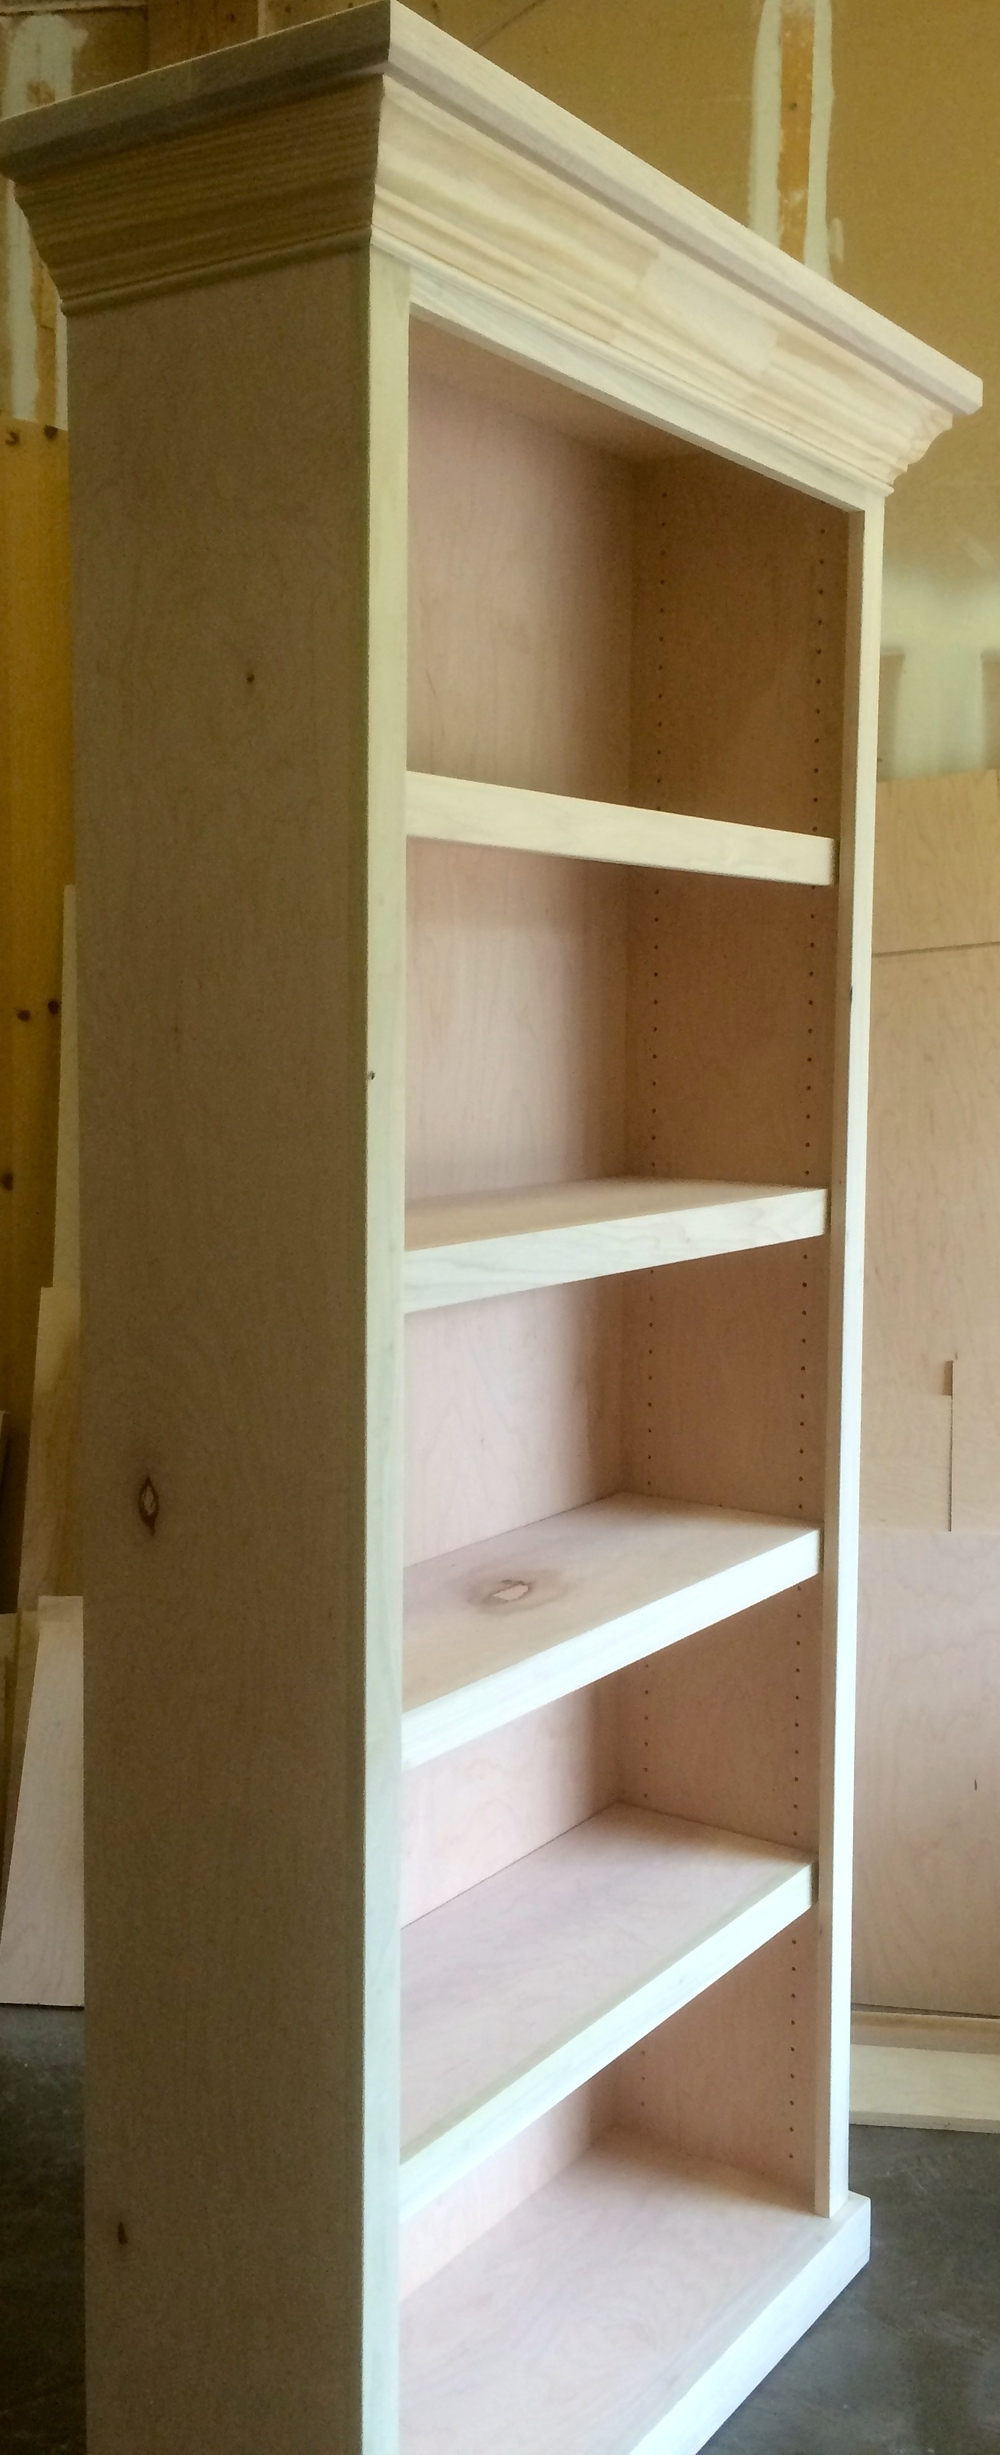 Bookcases Wood Gem Custom Cabinets Regarding Free Standing Bookcases (#2 of 15)